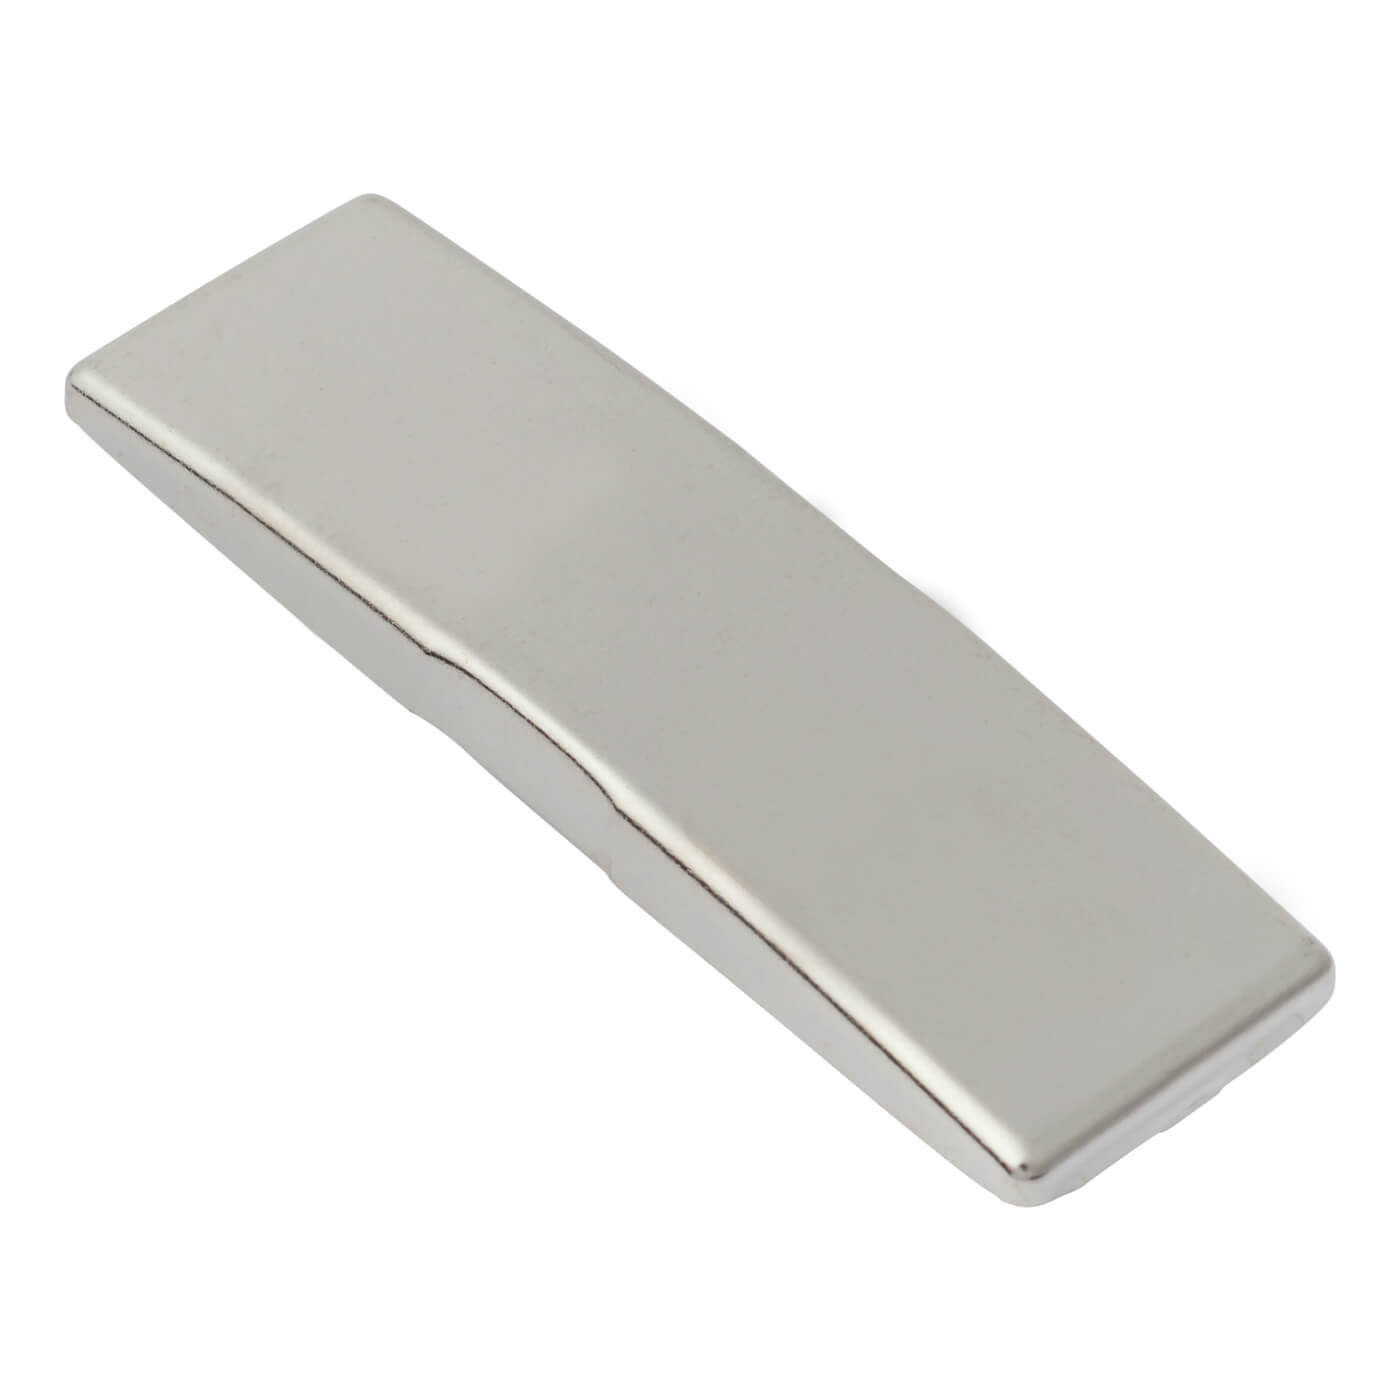 Blum Arm Cover Plate - Suit 95°, 100°, & 107° Cabinet Hinge - Overlay - Pack 10)